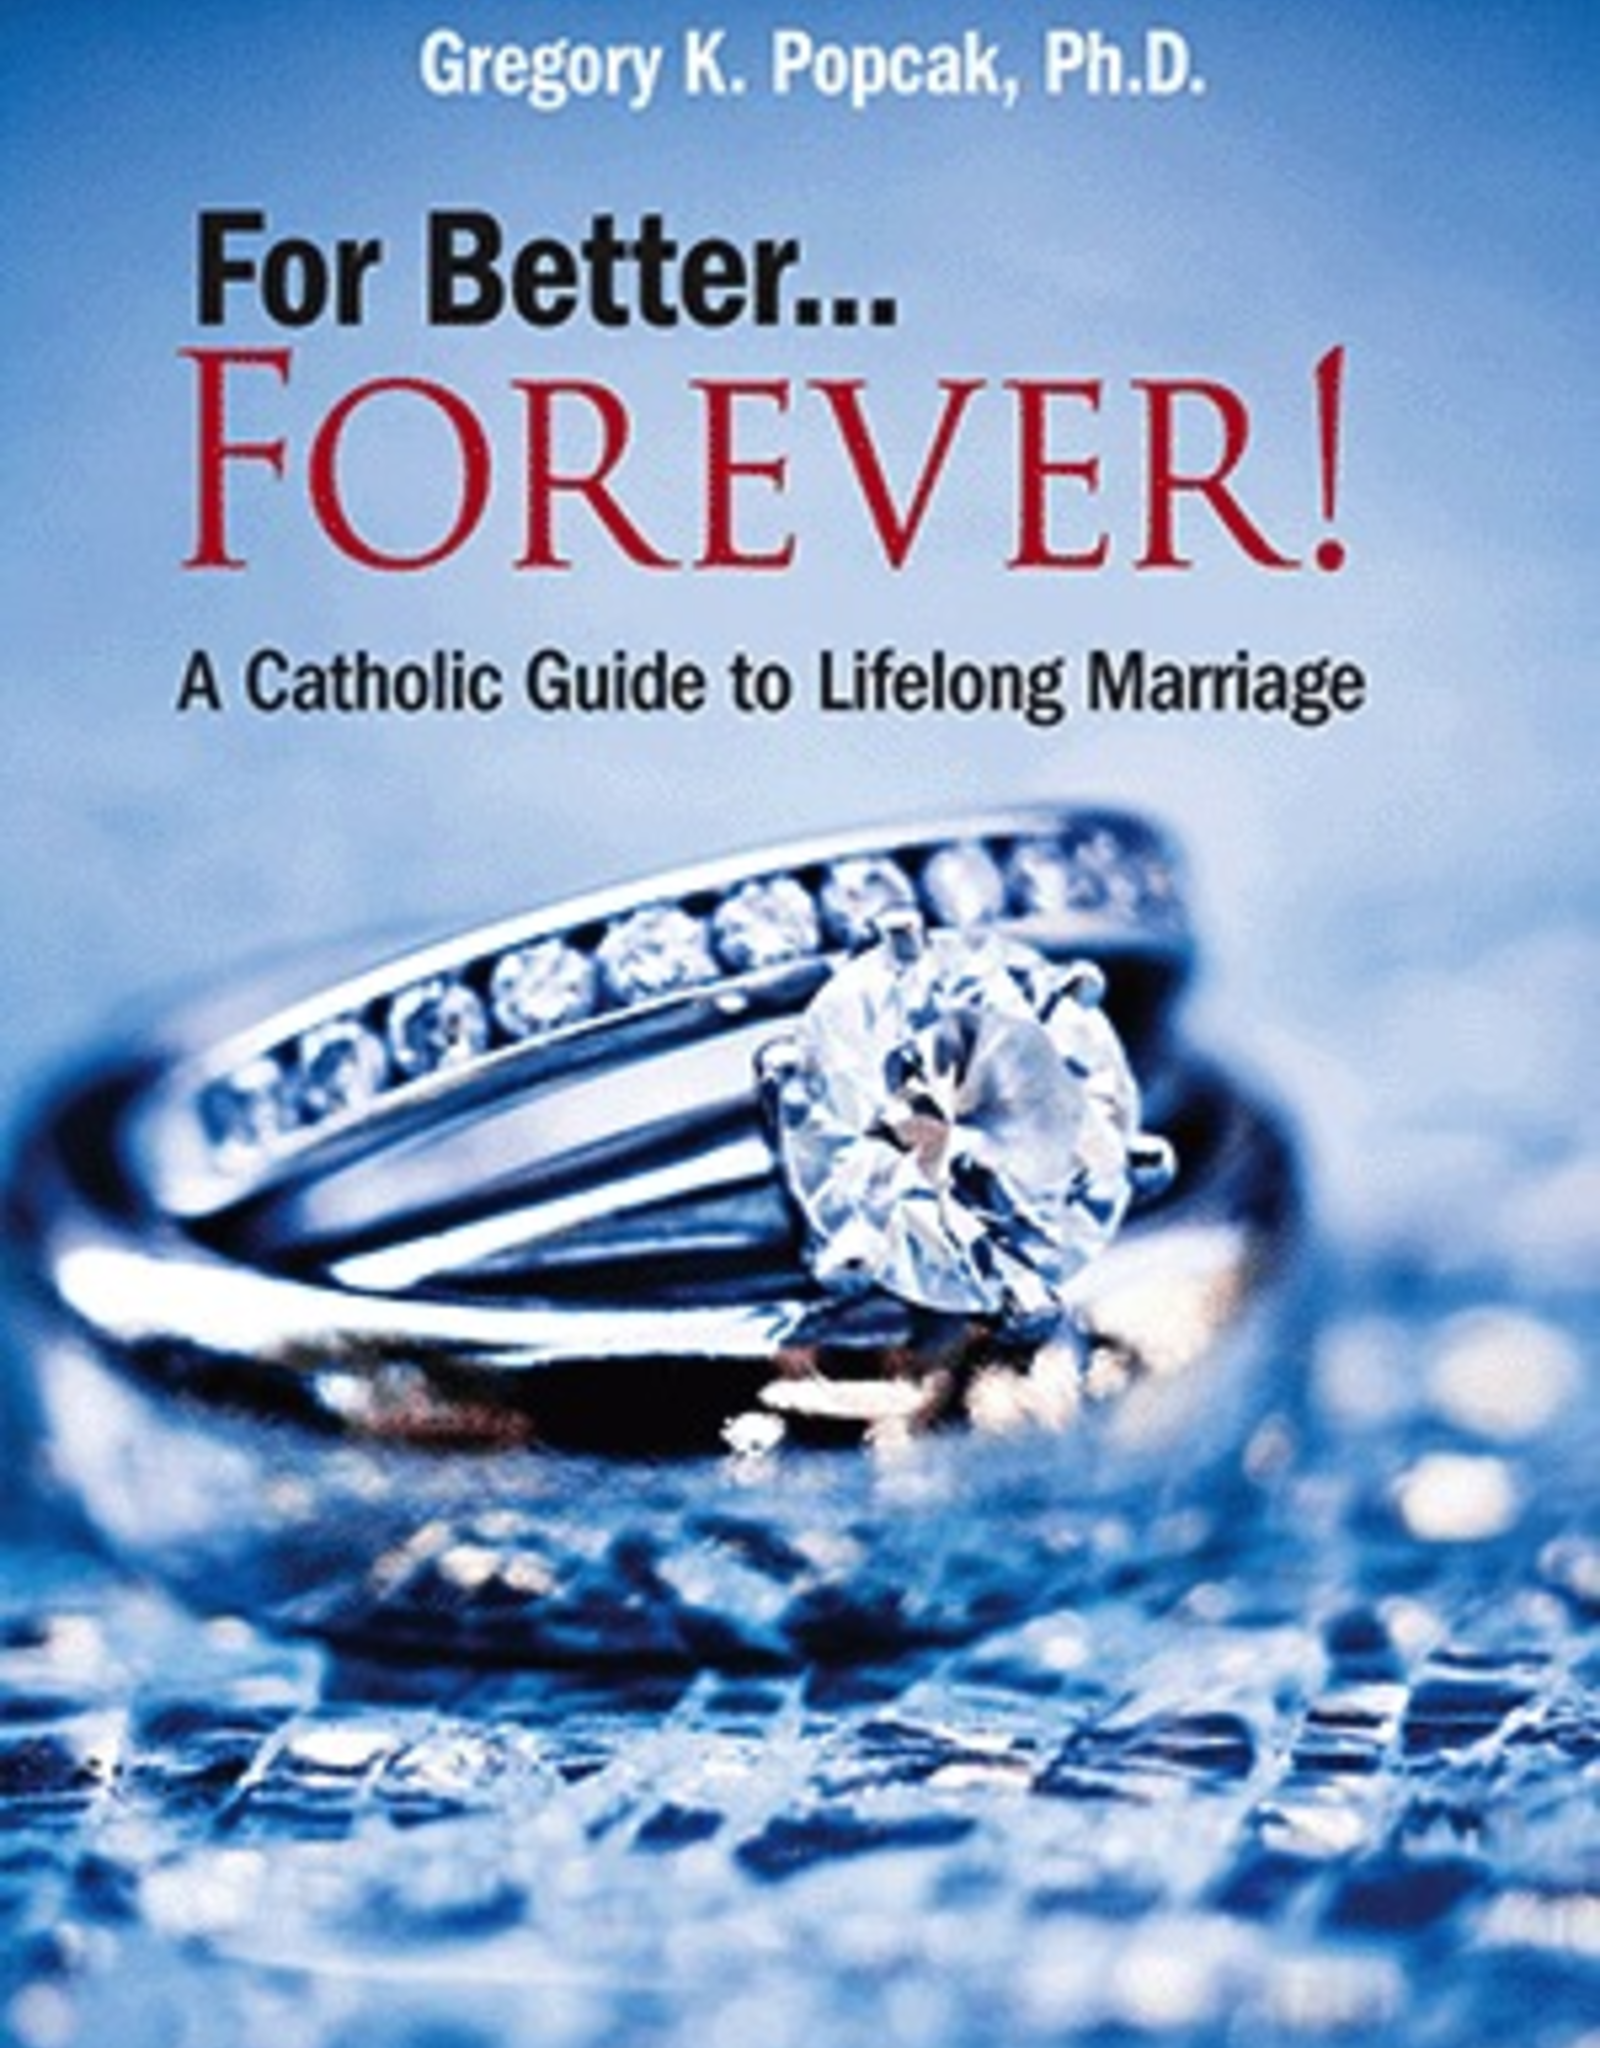 Our Sunday Visitor For Better....Forever! A Catholic Guide to Lifelong Marriage, by Gregory K. Popcak (paperback)